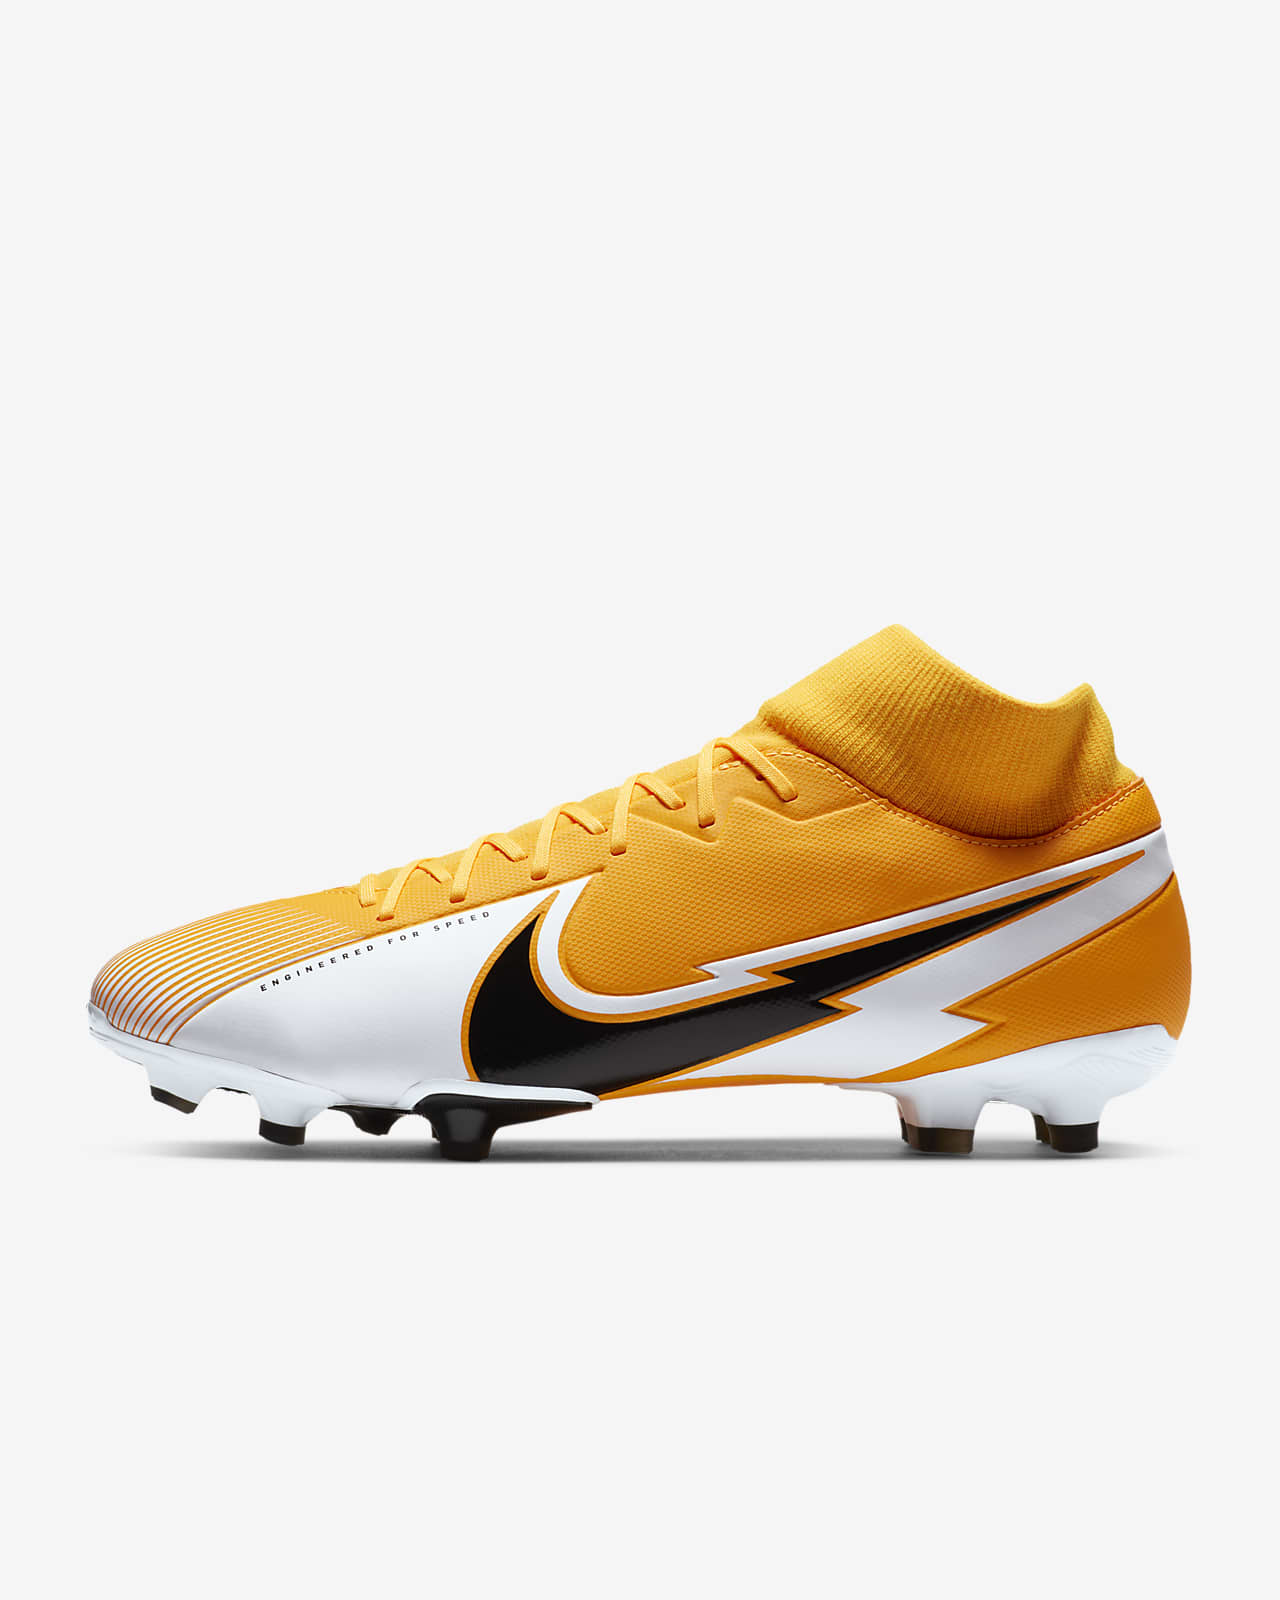 Nike Mercurial Superfly 7 Academy MG Multi-Ground Soccer Cleat